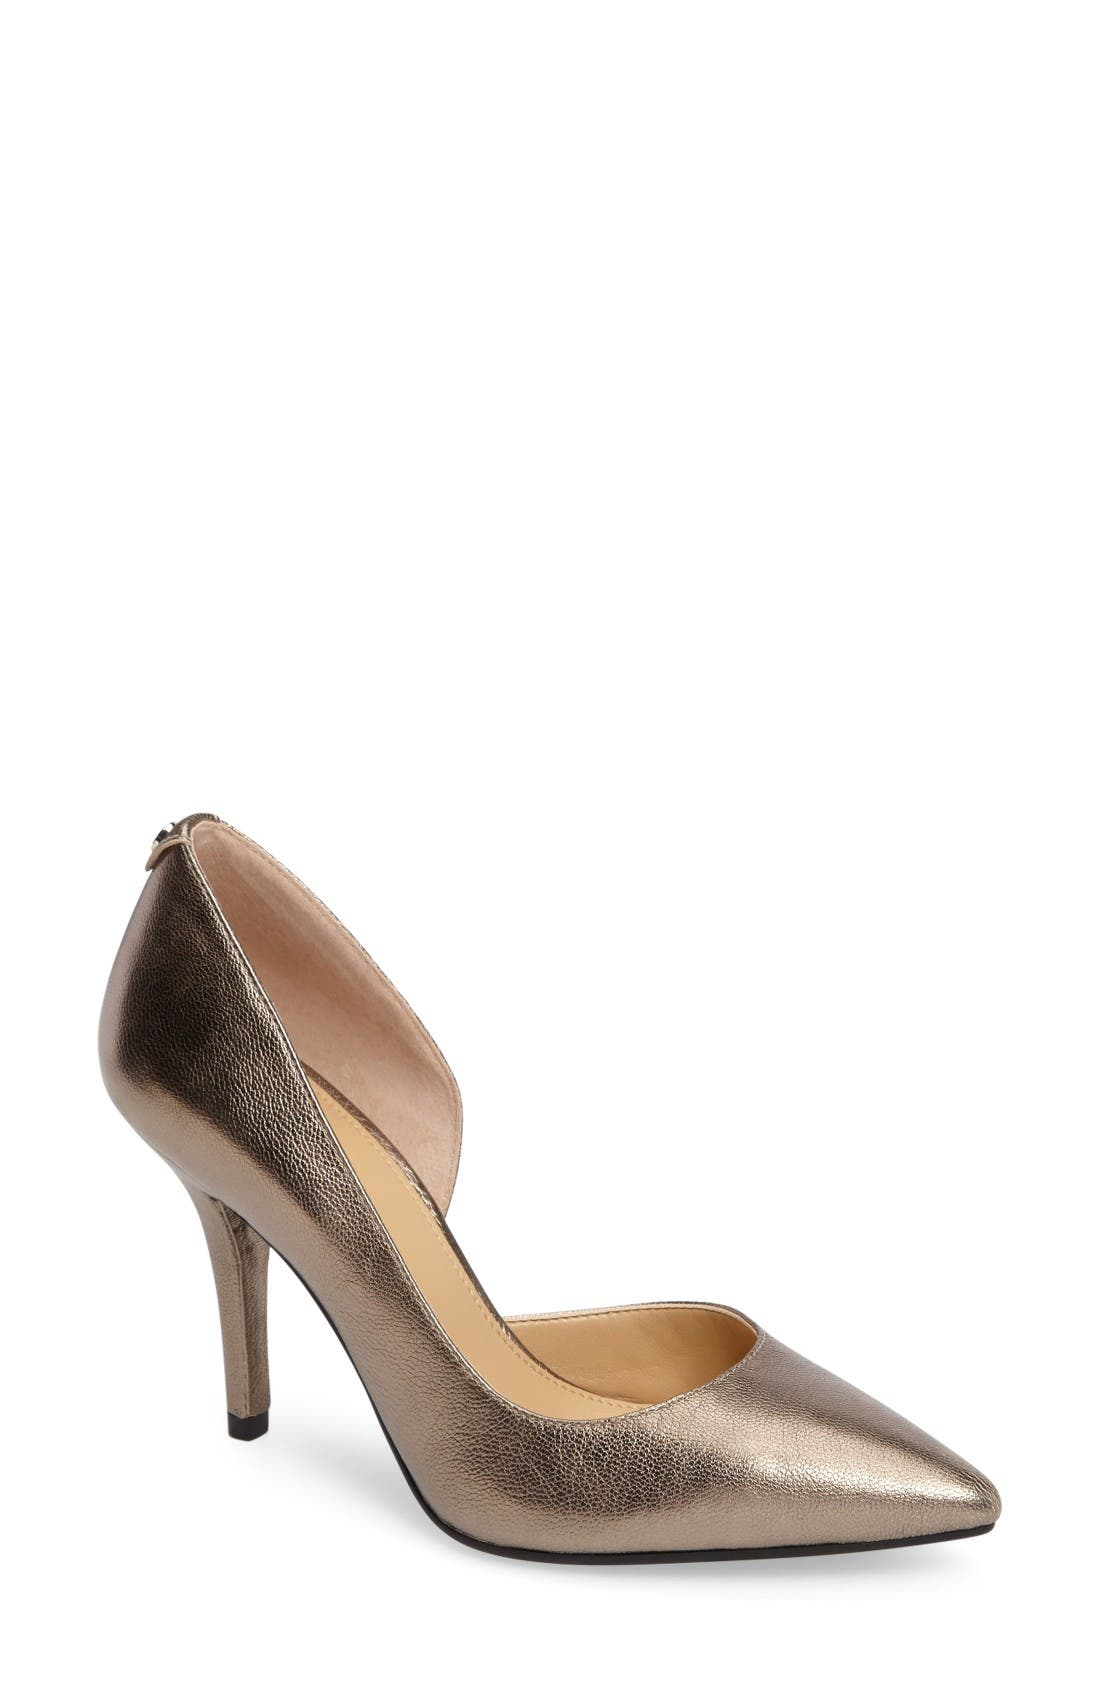 Nathalie Demi d'Orsay Pointy Toe Pump,                         Main,                         color, Nickel